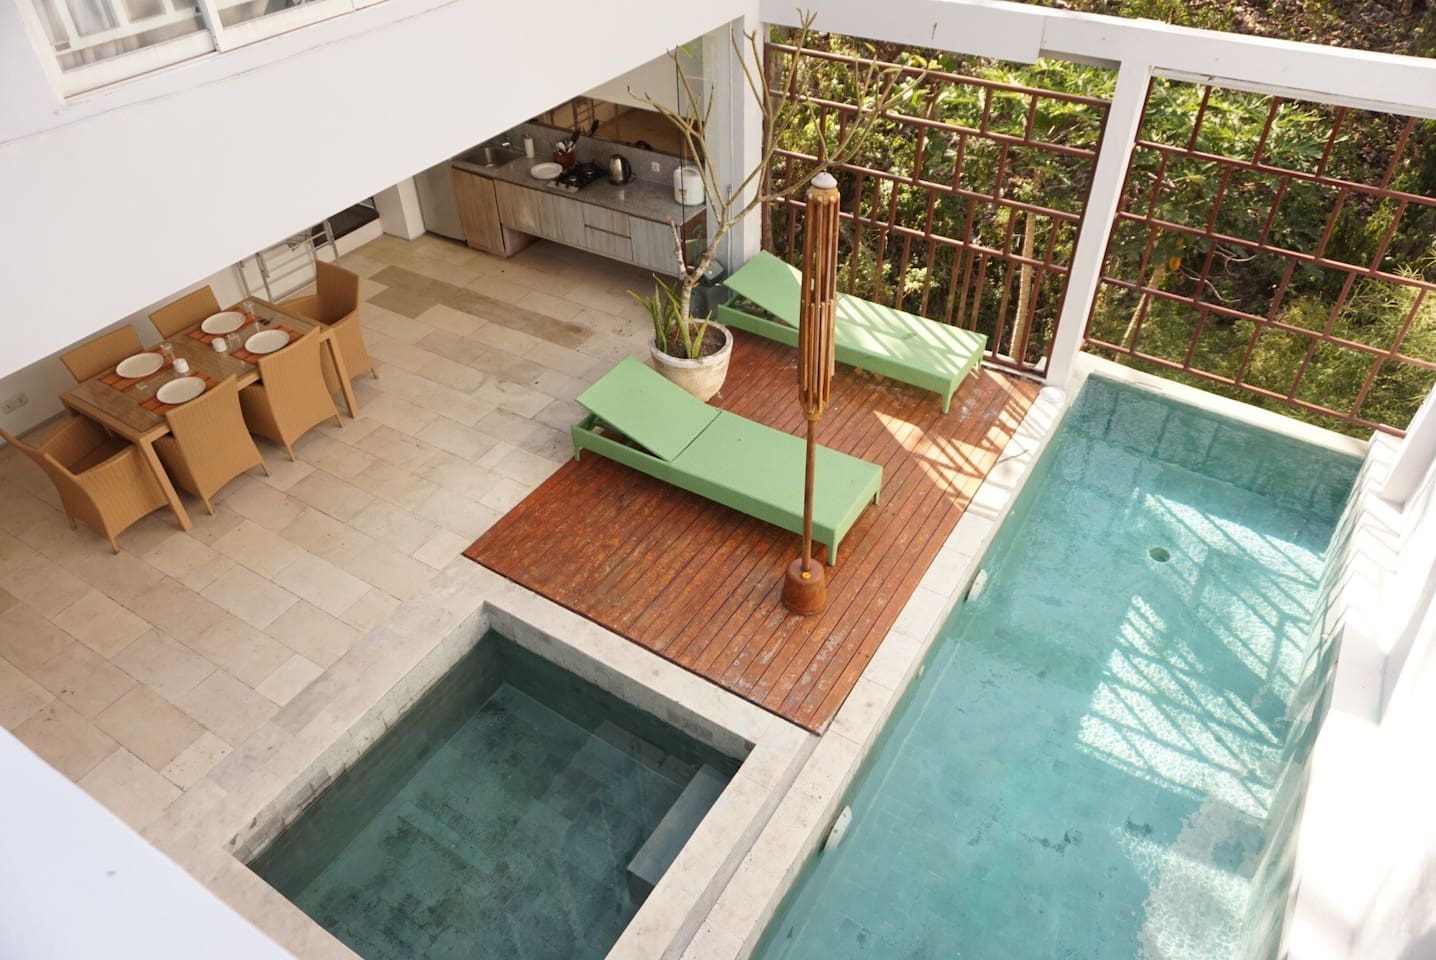 Swimming pool, dining area, and kitchen